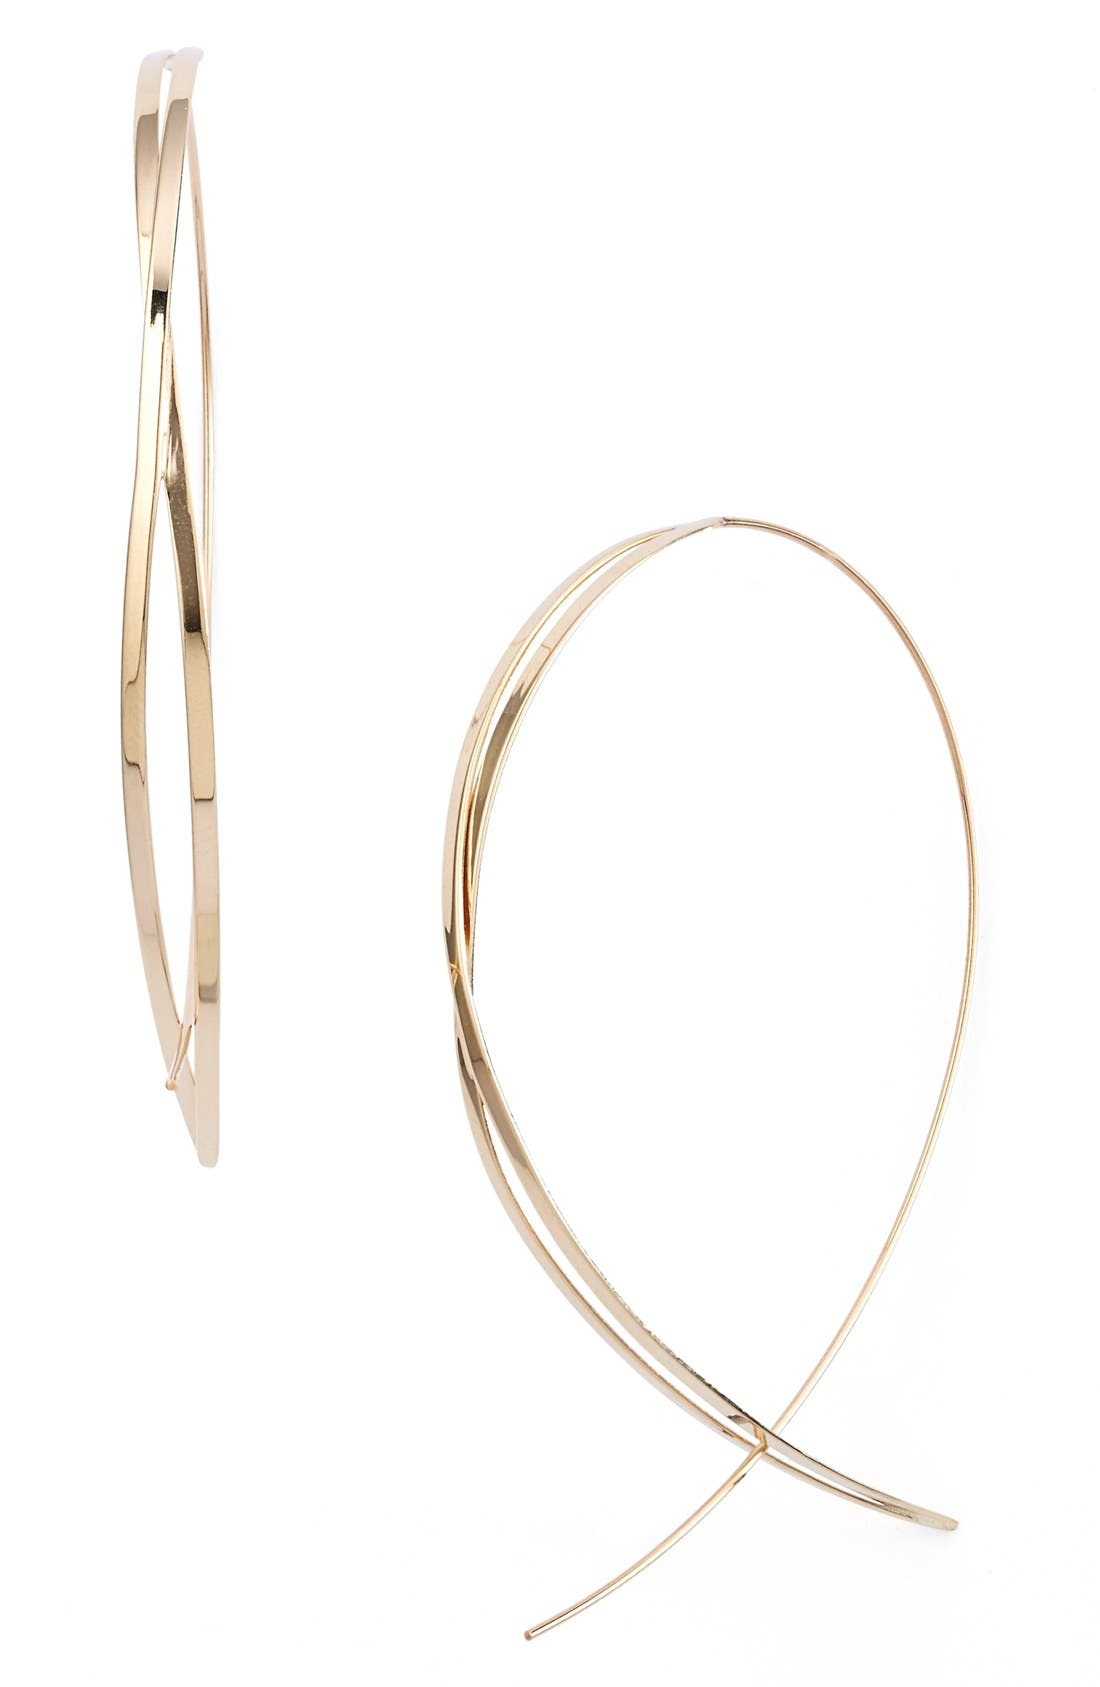 Main Image - Lana Jewelry 'Twist Upside Down' Large Hoop Earrings